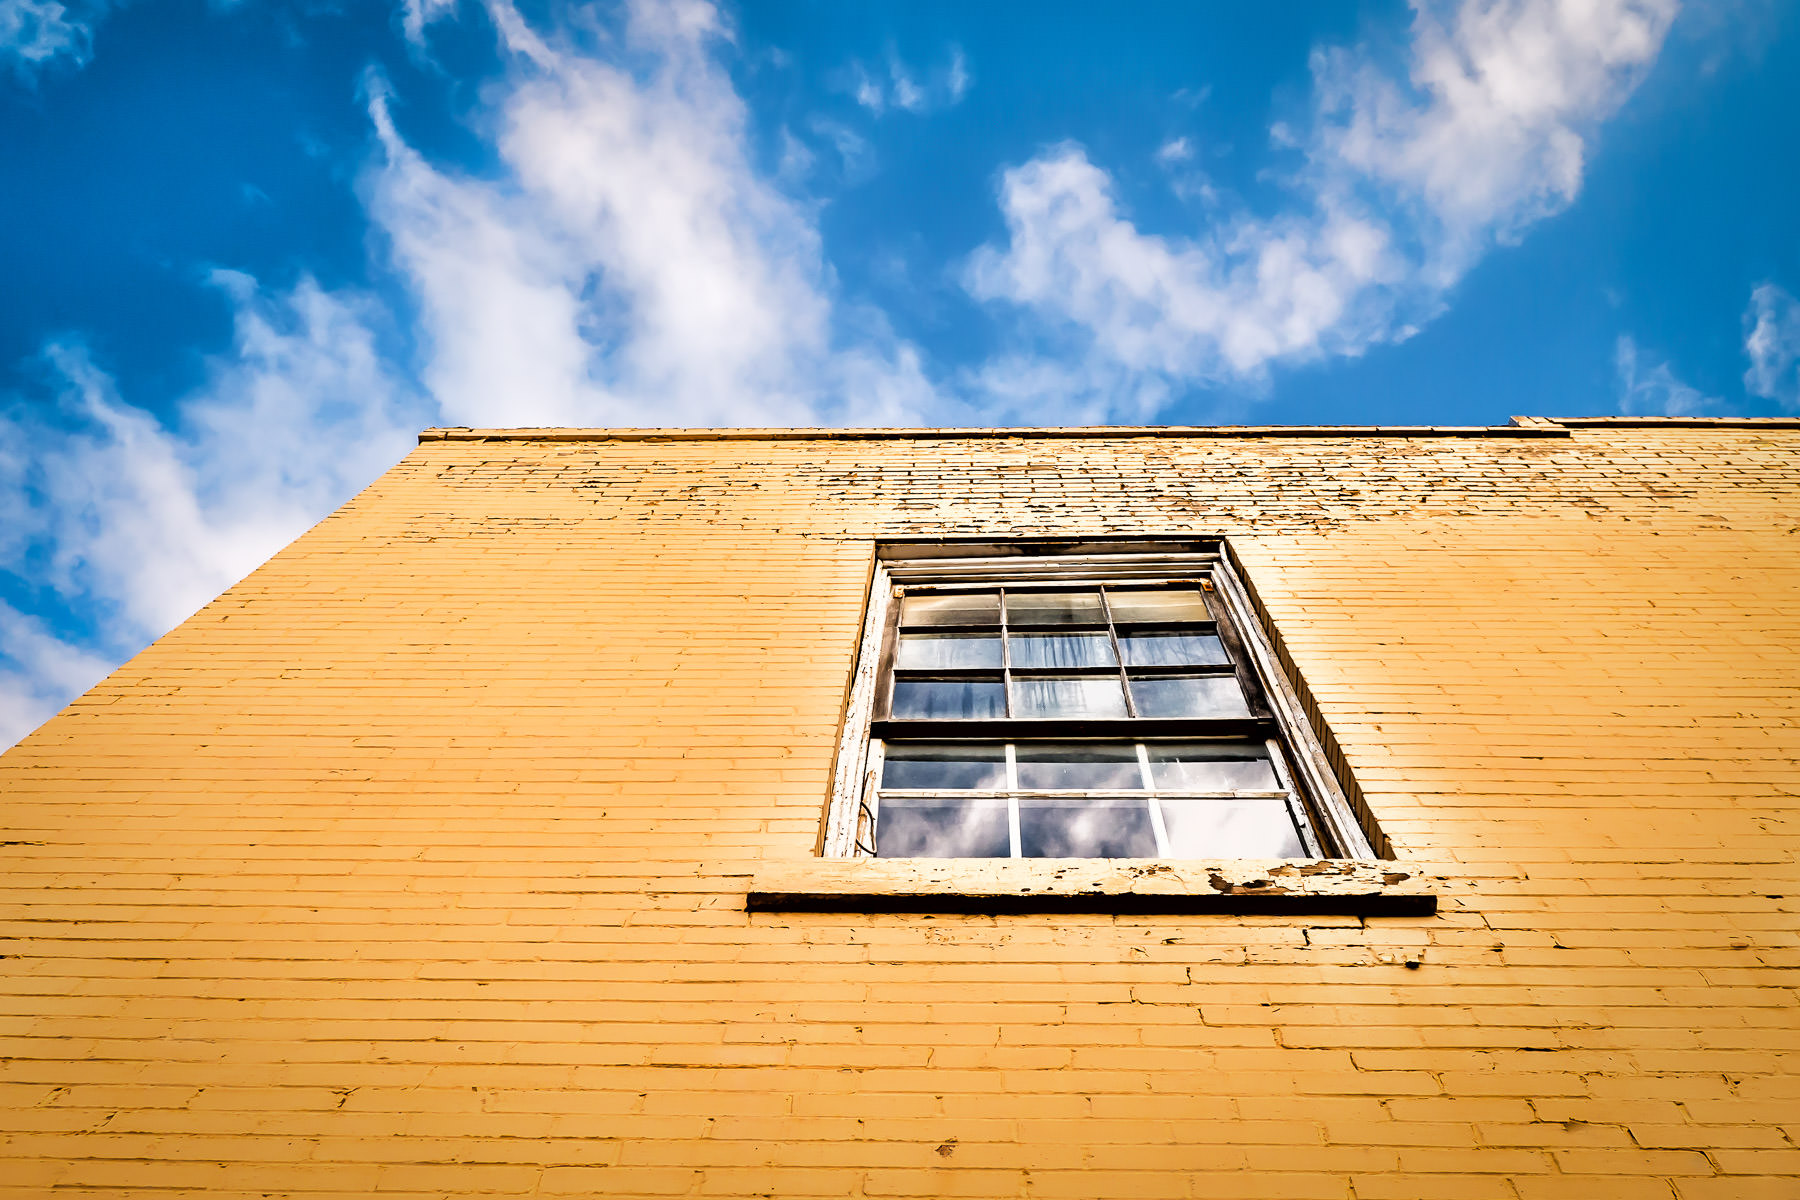 A window on a yellow-bricked building rises into the Texas sky in Downtown Waxahachie.